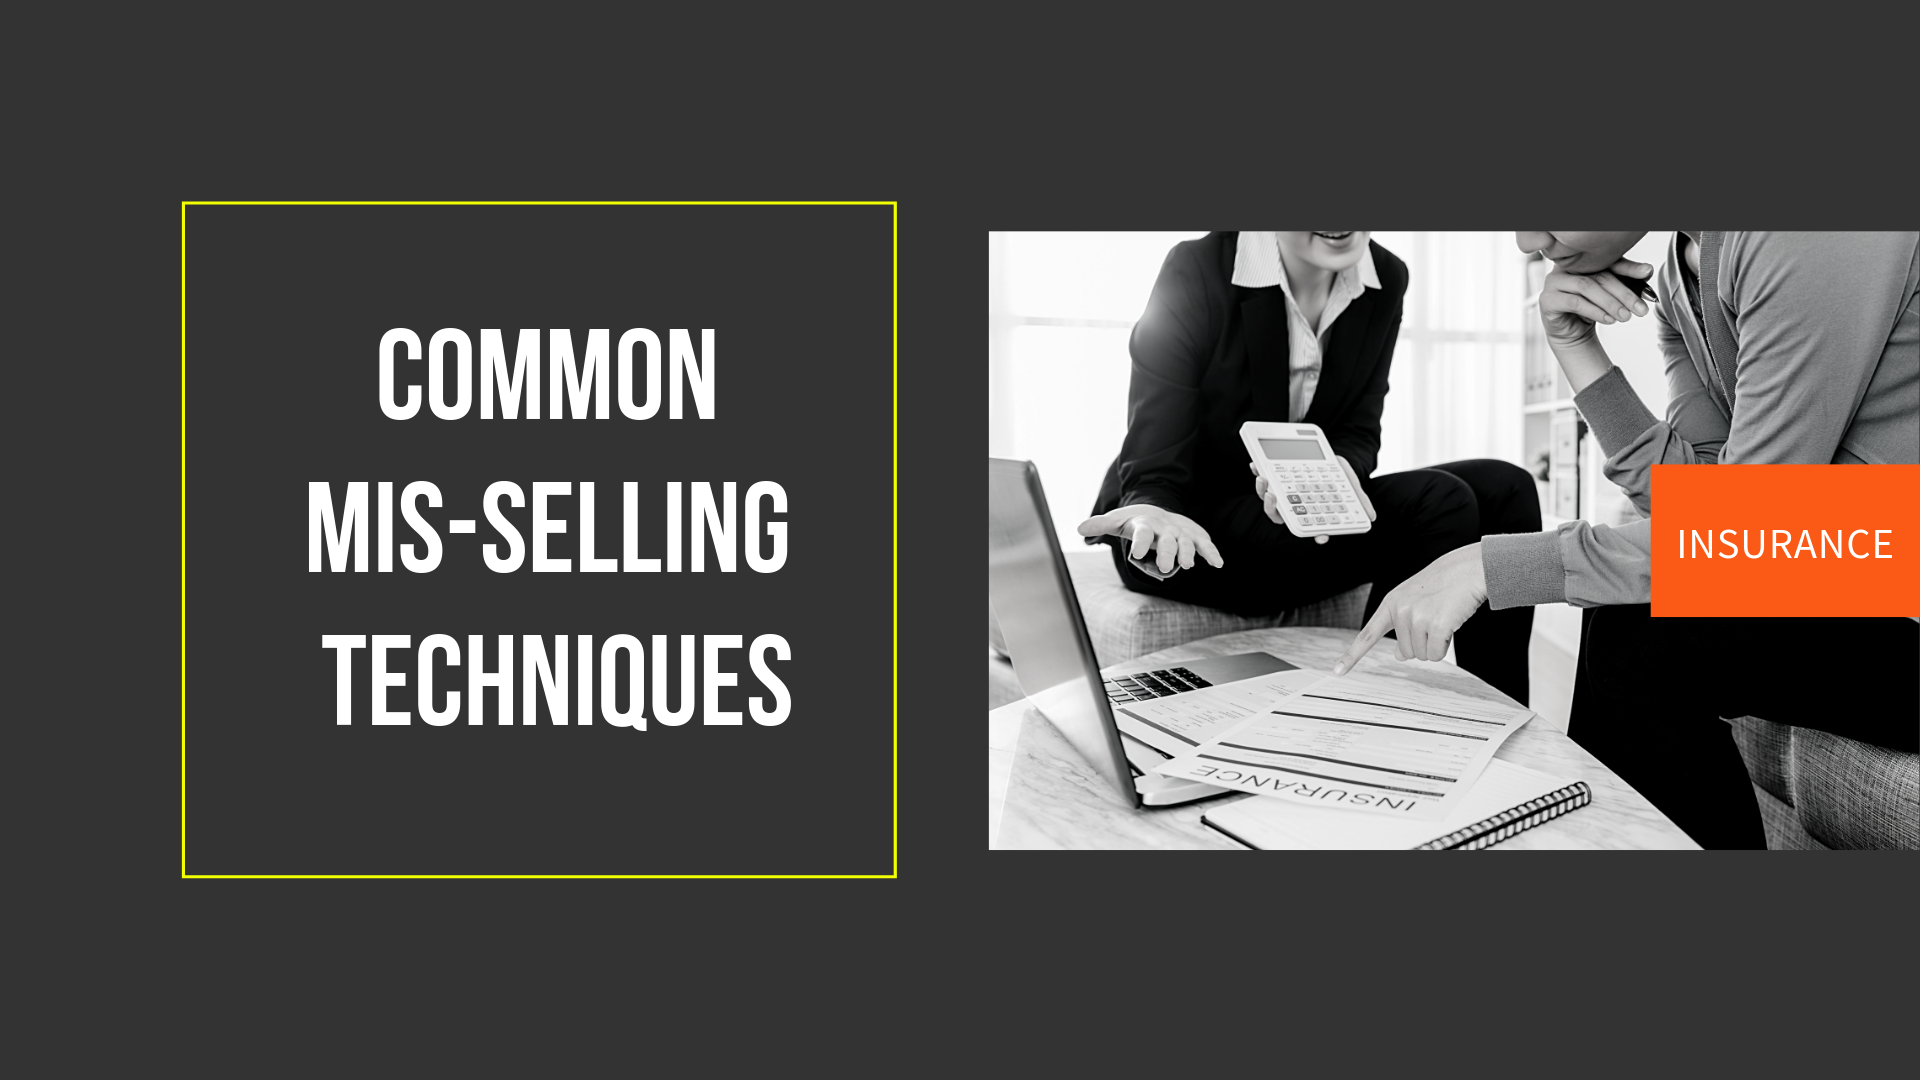 4 Common mis-selling techniques of Insurance Agents